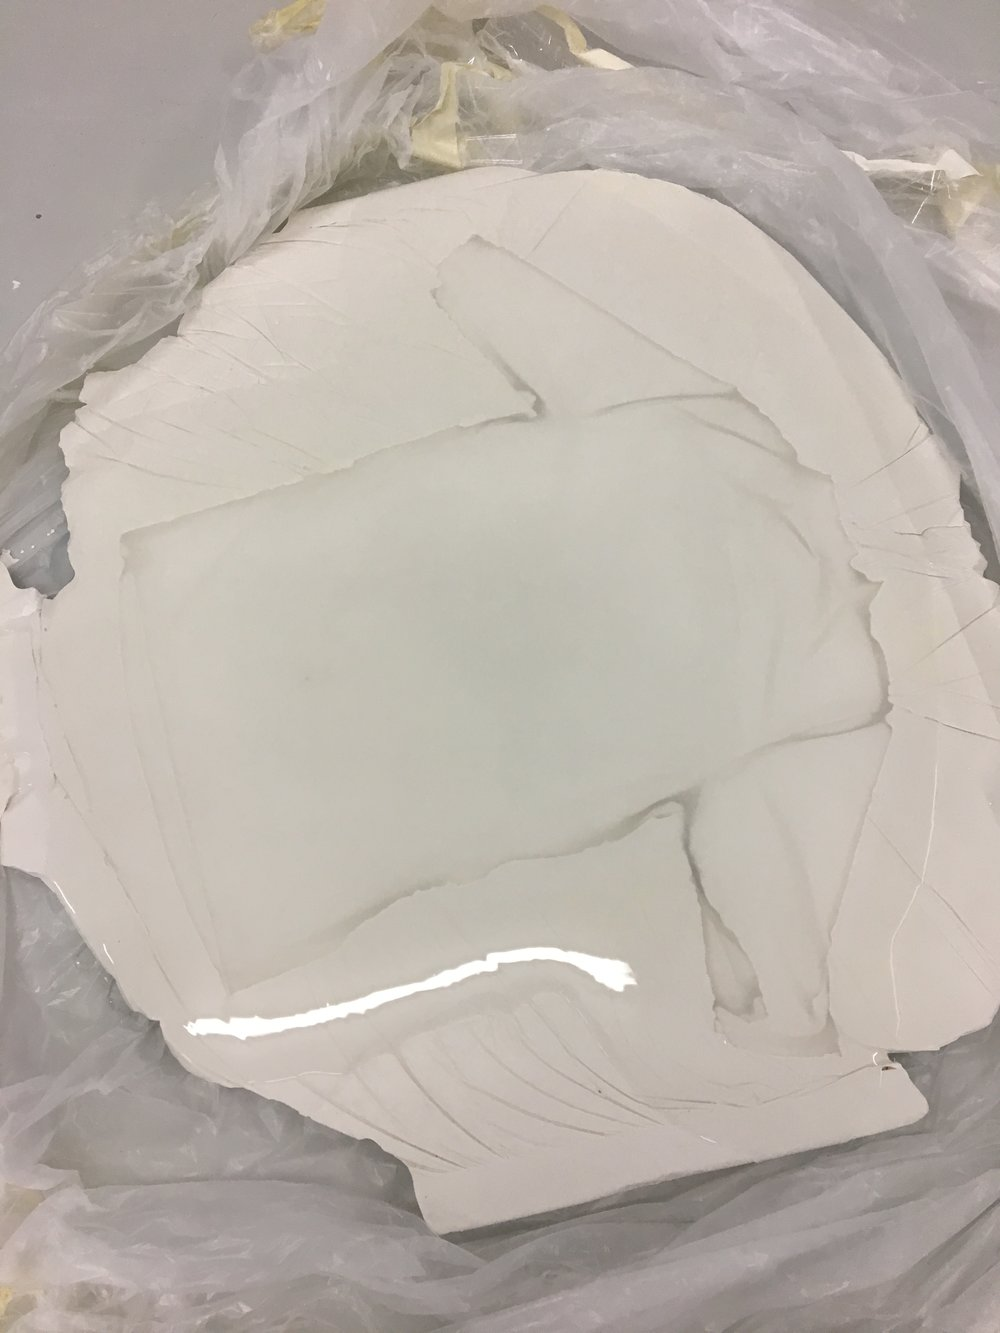 curing silicone